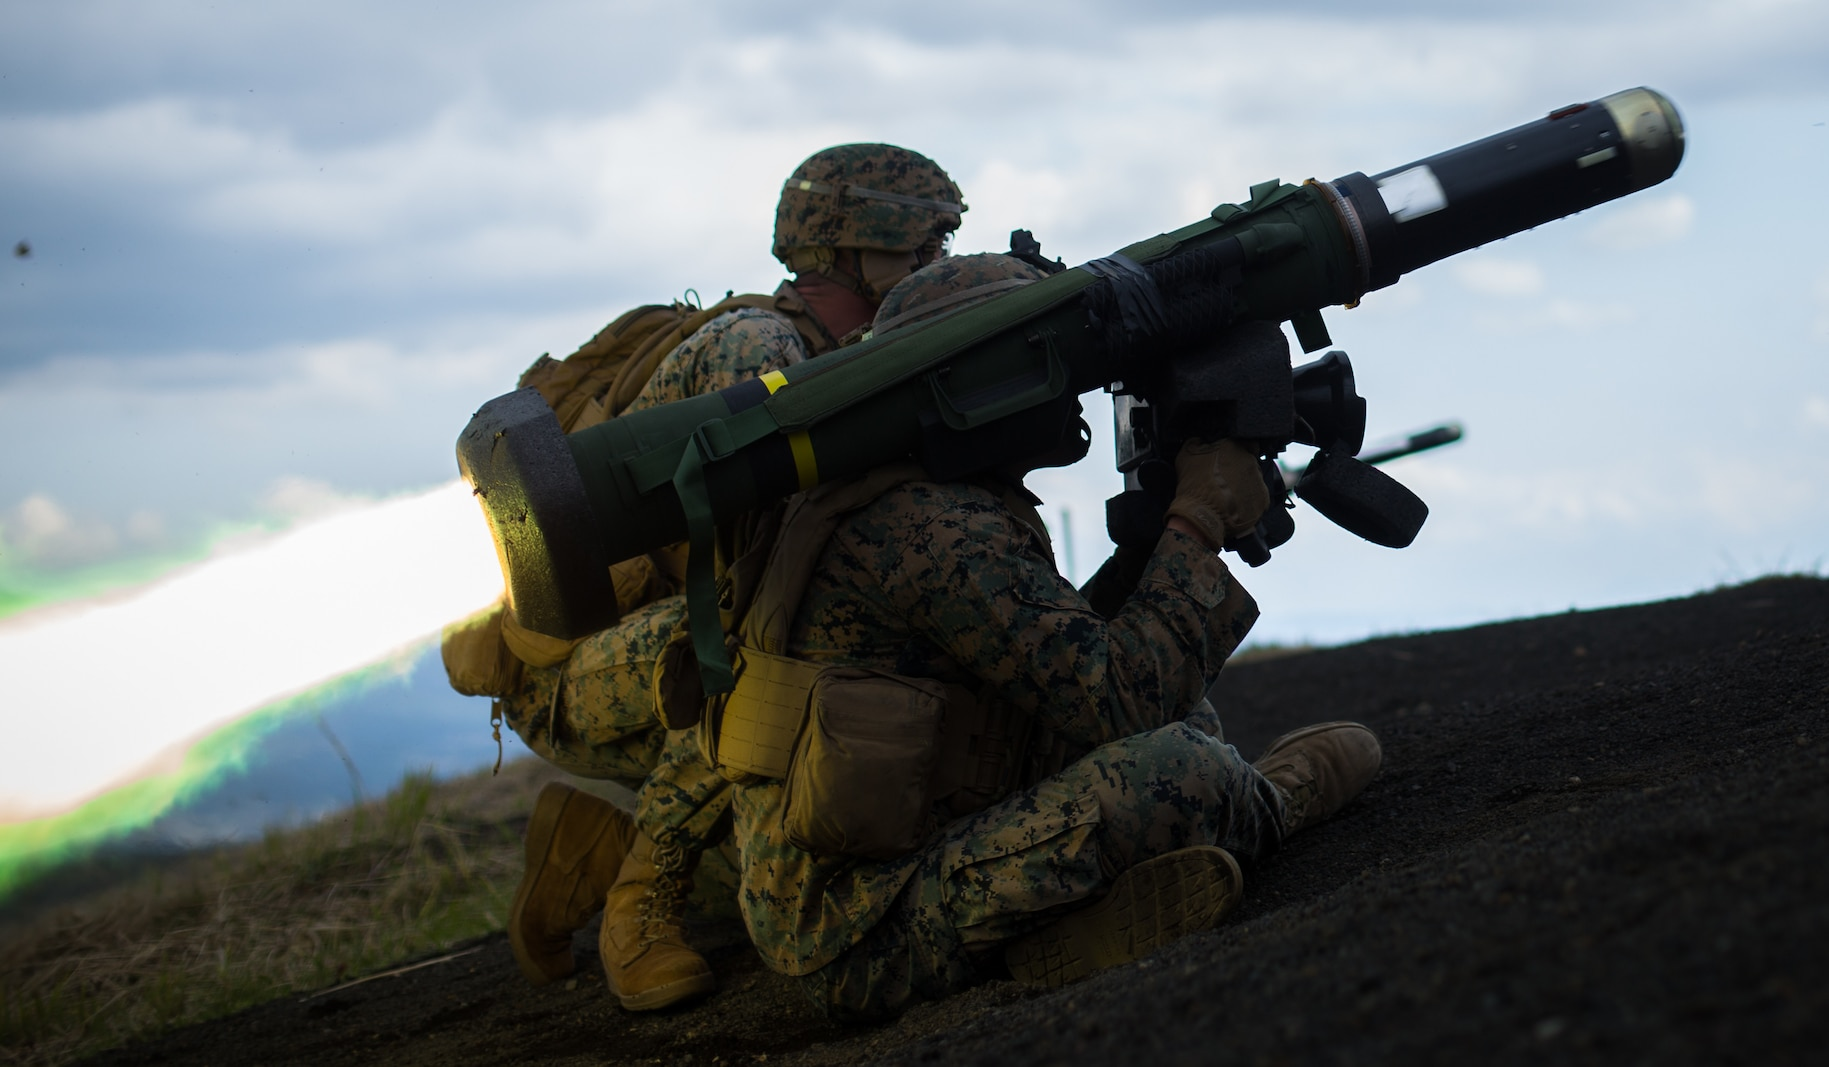 U.S. Marine Corps Lance Cpl. Justin Cooper and Cpl. Jacob Siemsen, anti-tank missile gunners with 3d Battalion, 3d Marines, fire a Javelin missile while conducting a live-fire combat rehearsal during Fuji Viper 21.3 at Combined Arms Training Center, Camp Fuji, Japan, April 12, 2021. During this exercise, Marines honed tactics, techniques, and procedures to support expeditionary advanced base operations at the platoon and company level. 3/3 is forward-deployed in the Indo-Pacific under 4th Marines, 3d Marine Division. Cooper is a native of Old Bridge, New Jersey and Siemsen is a native of Tillamook, Oregon. (U.S. Marine Corps photo by Lance Cpl. Jonathan Willcox)